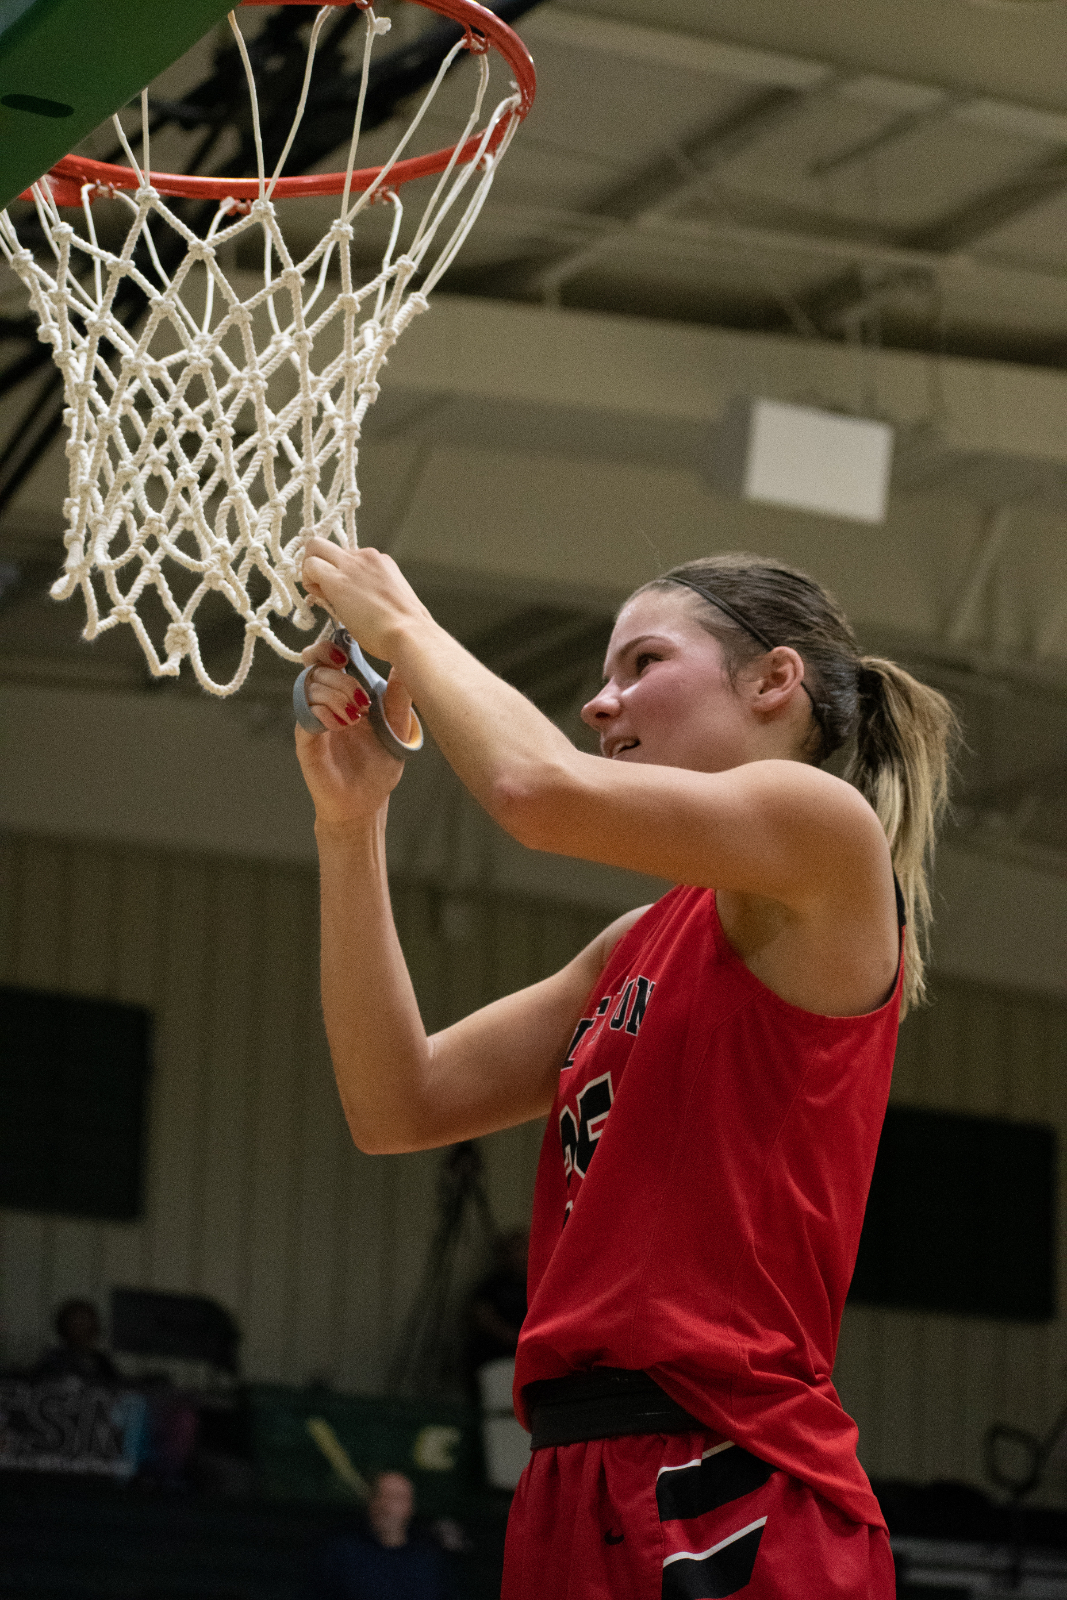 Cutting the Nets! 2A Champs